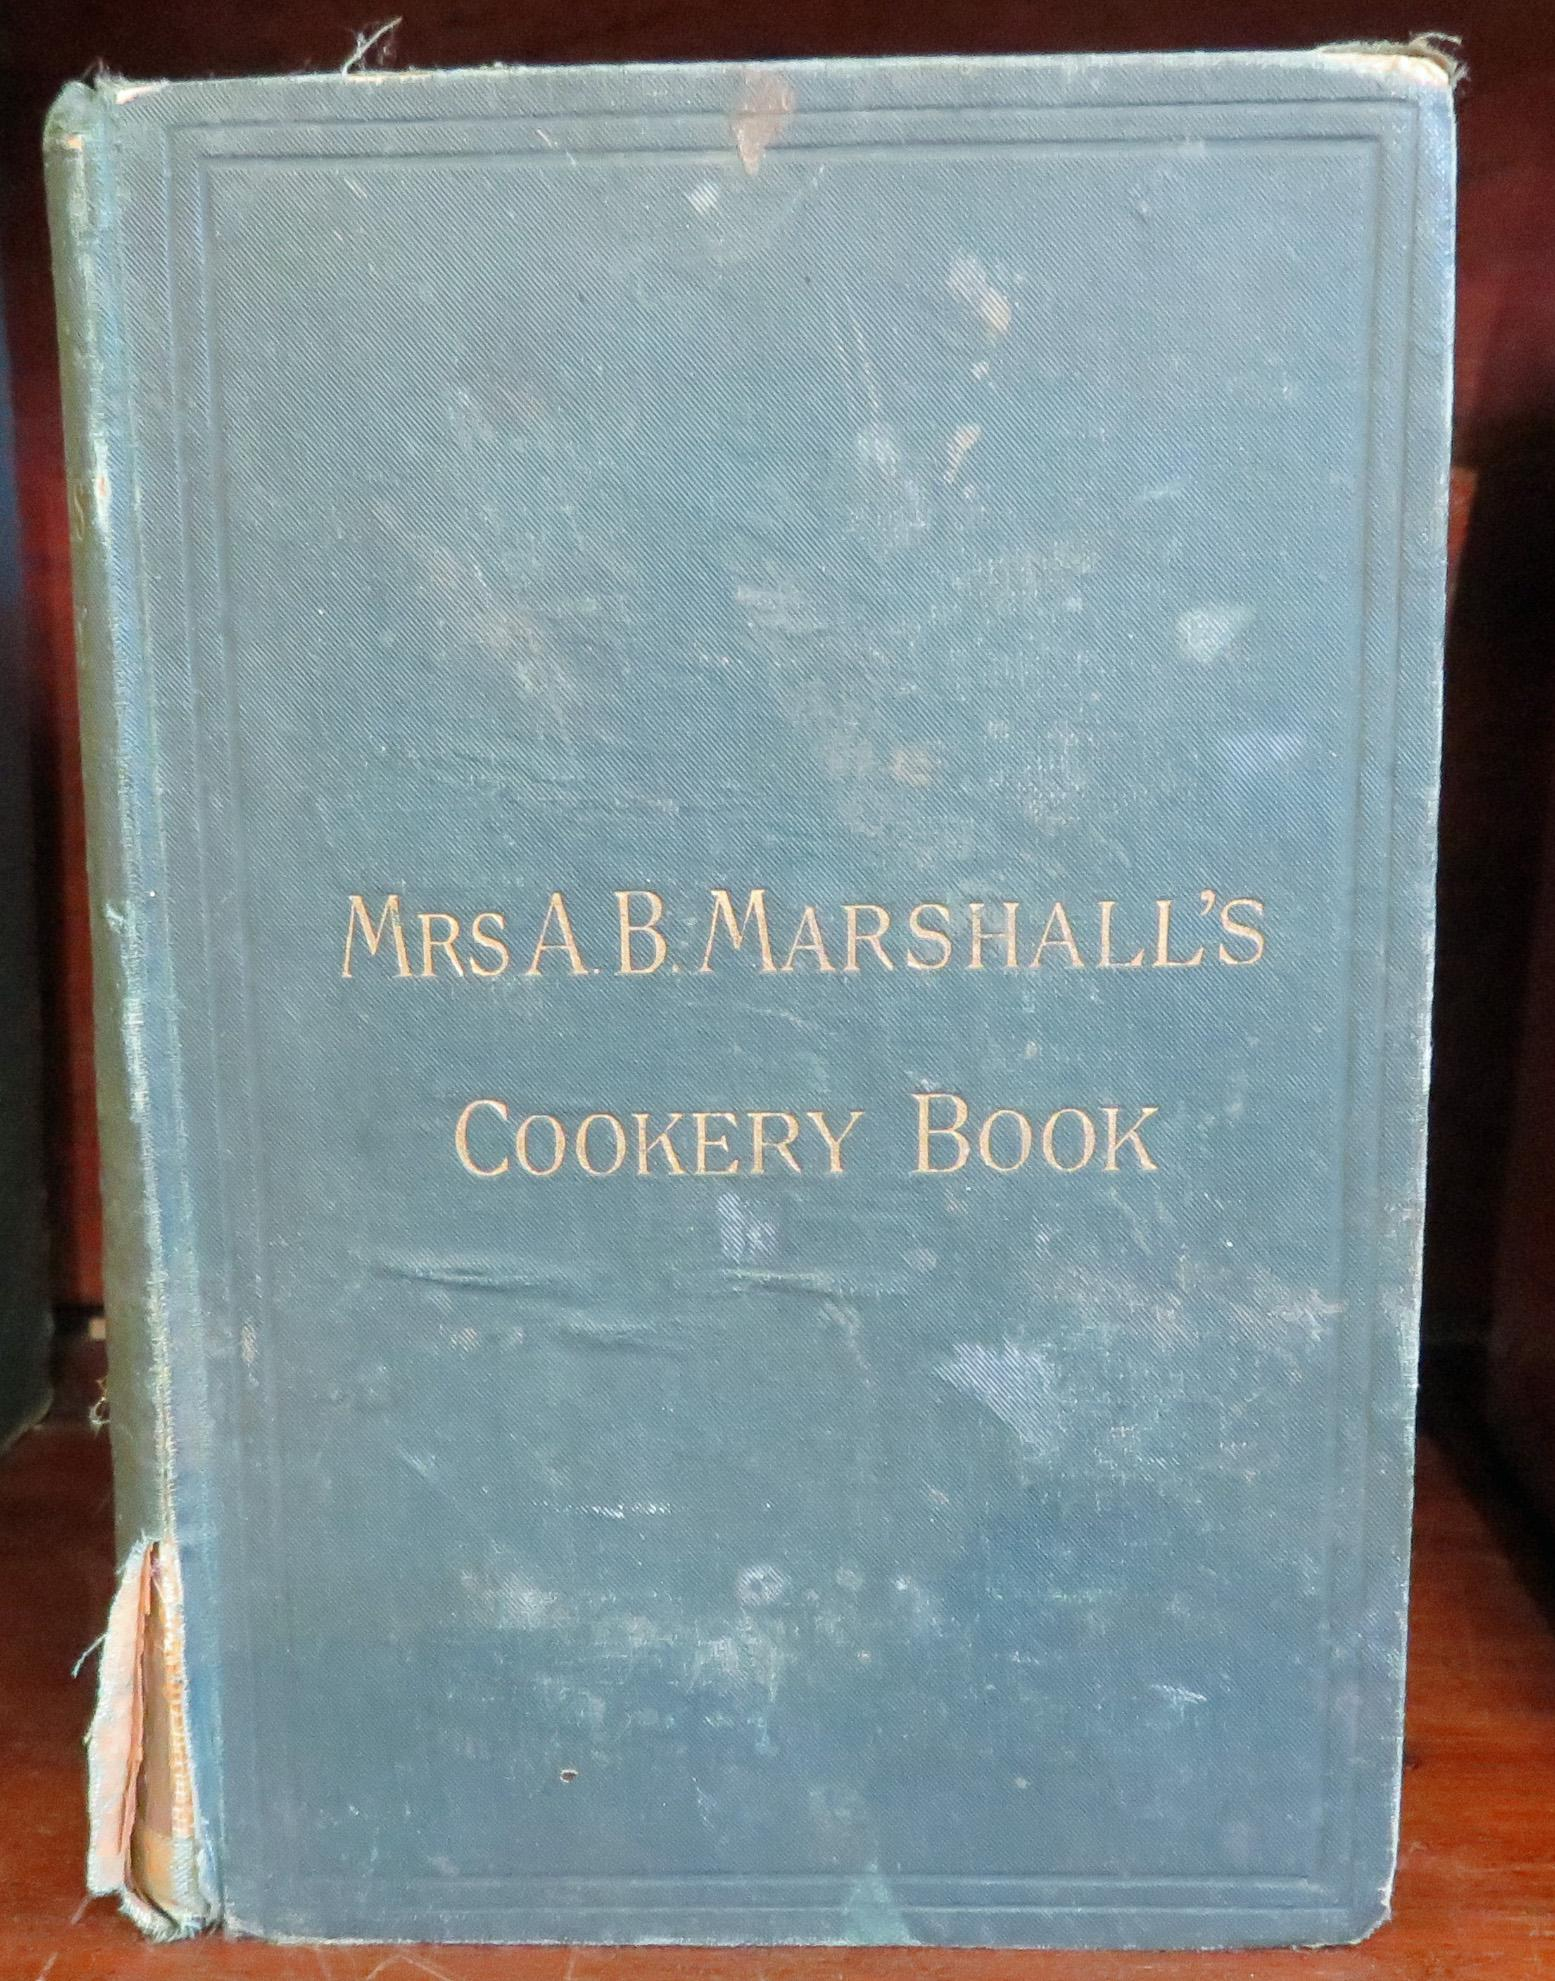 Mrs A. B. Marshall's Cookery Book